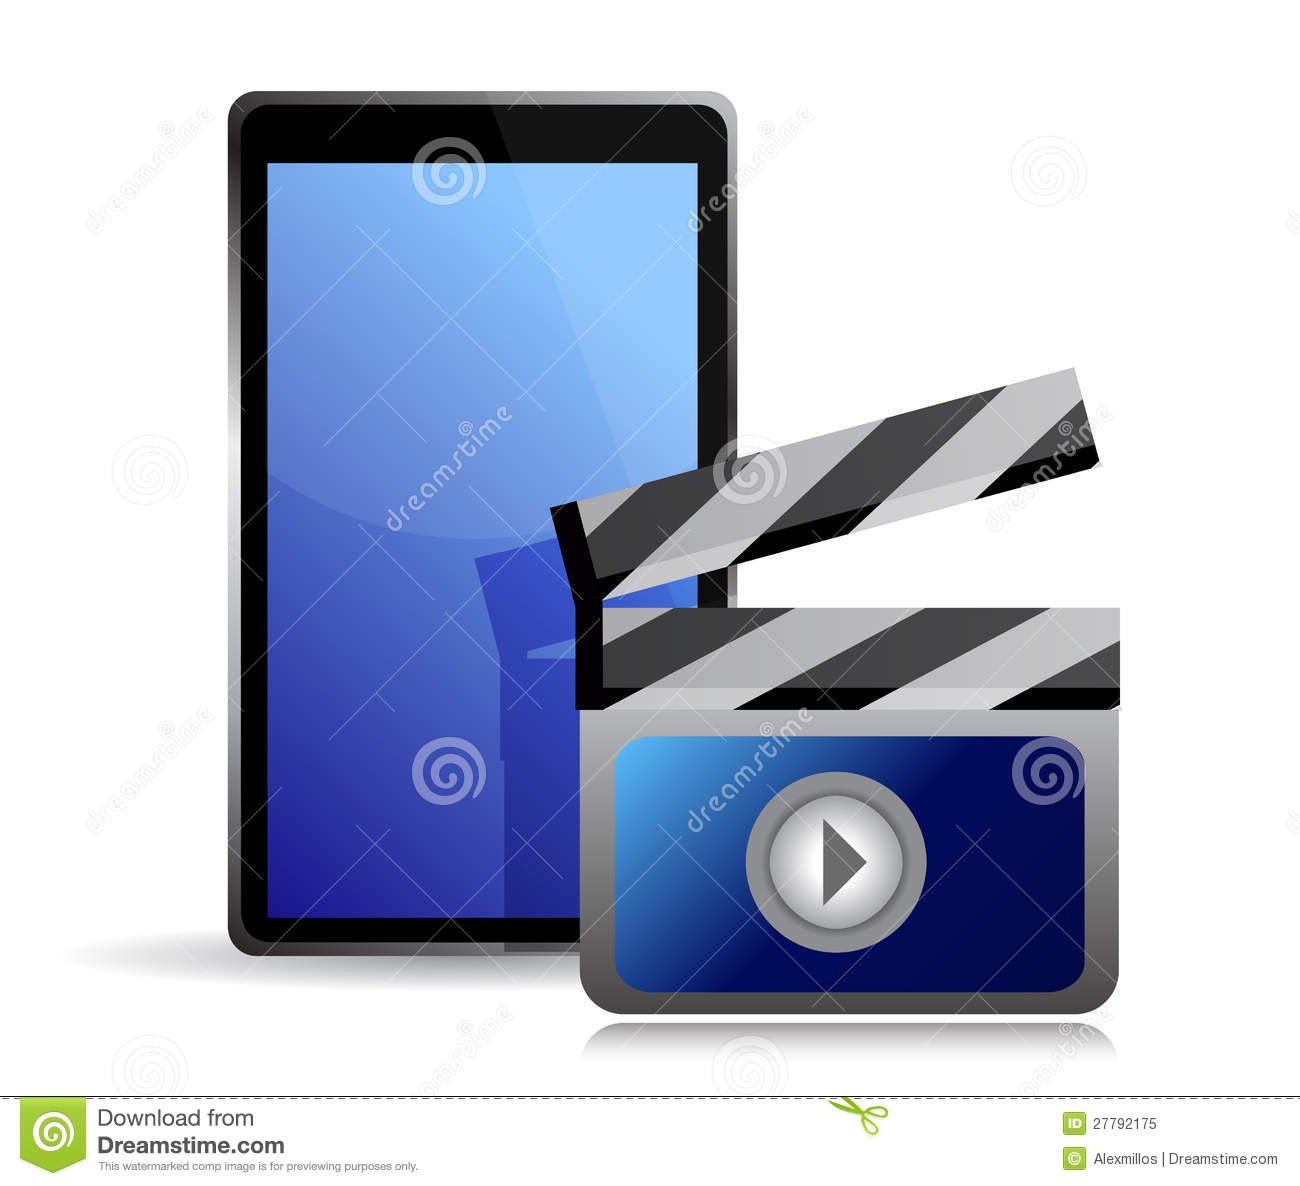 How To Edit Video On A Microsoft Tablet - YouTube